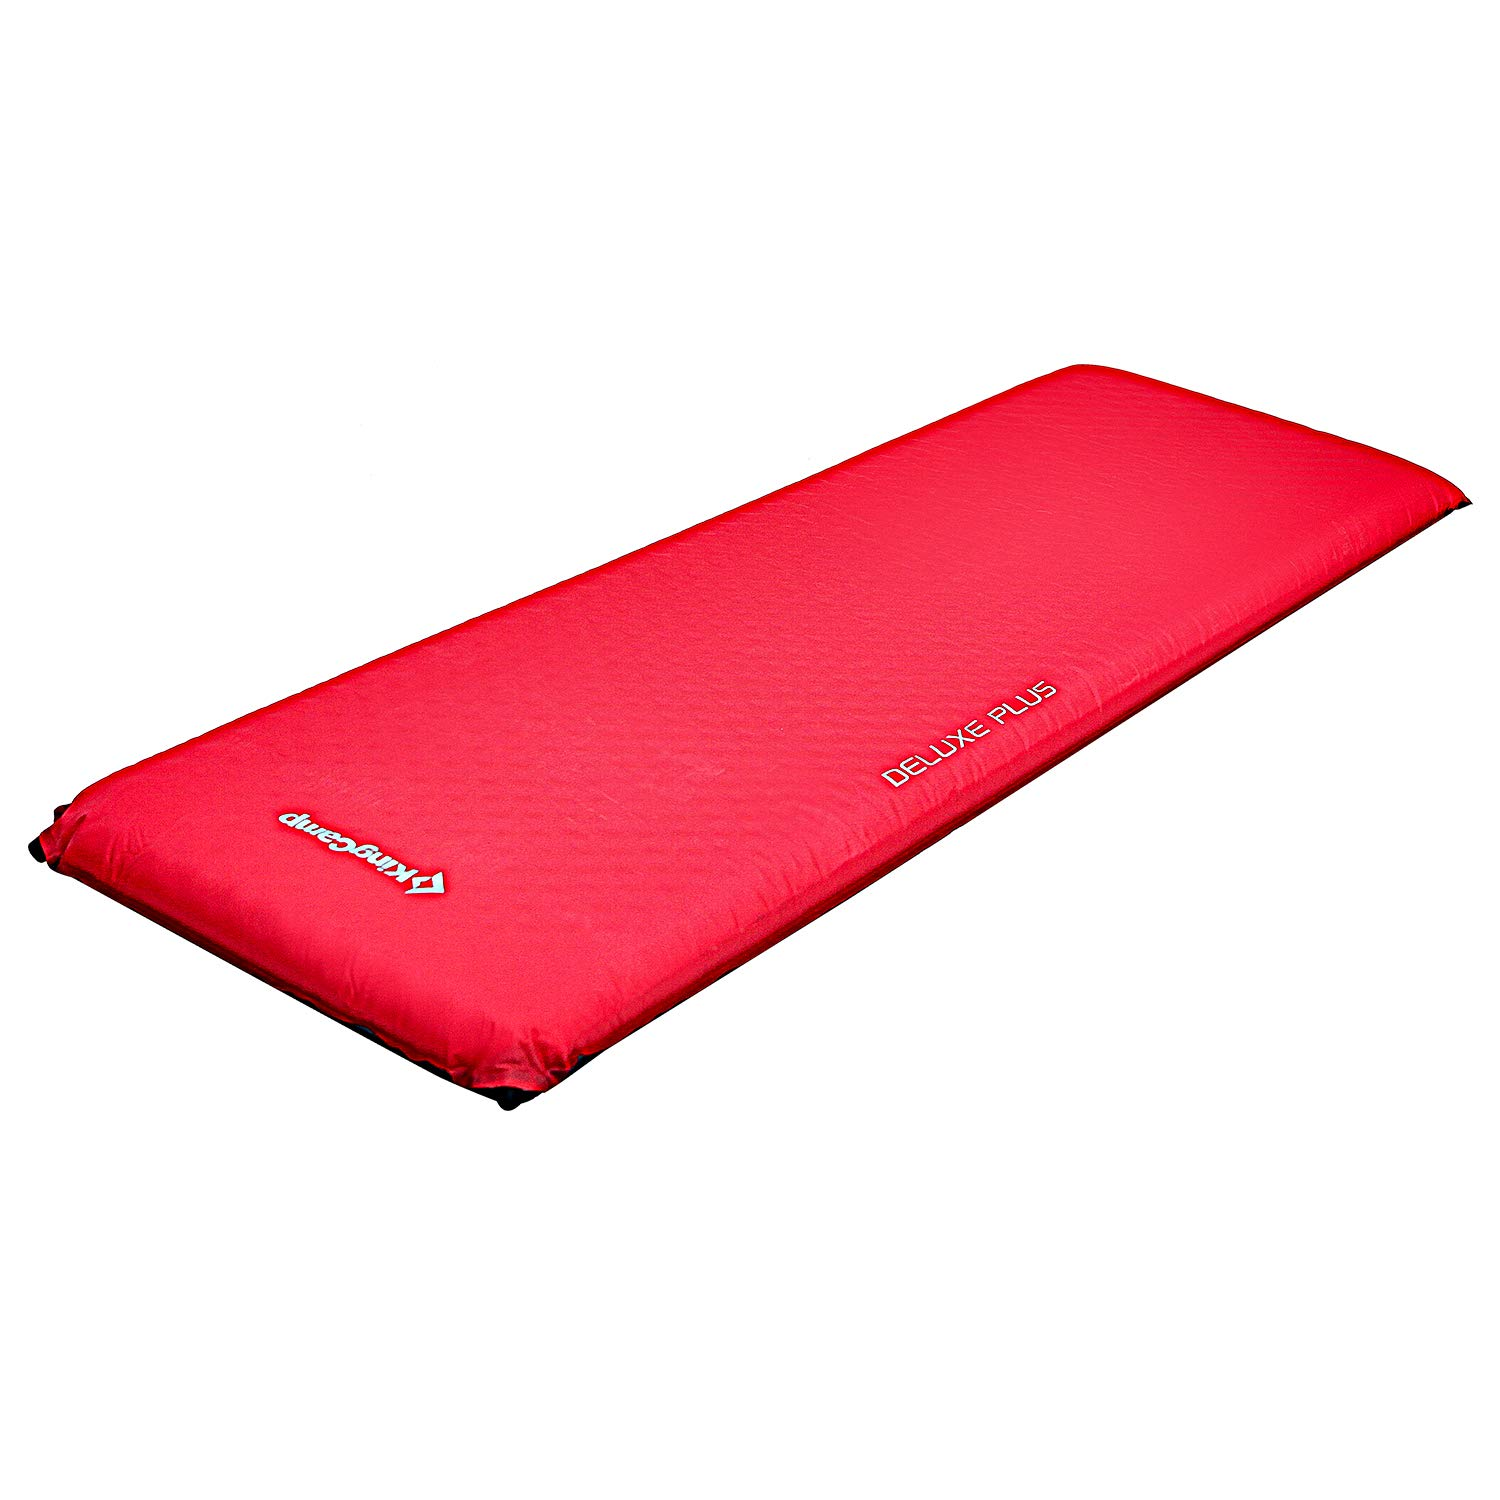 KingCamp Camping Sleeping Pad Foam Mattress - Deluxe Plus Self Inflating 4 inches Thick Pad with Carry Bag, Suitable for Family Outdoor Activities (Red-Deluxe Plus) by KingCamp